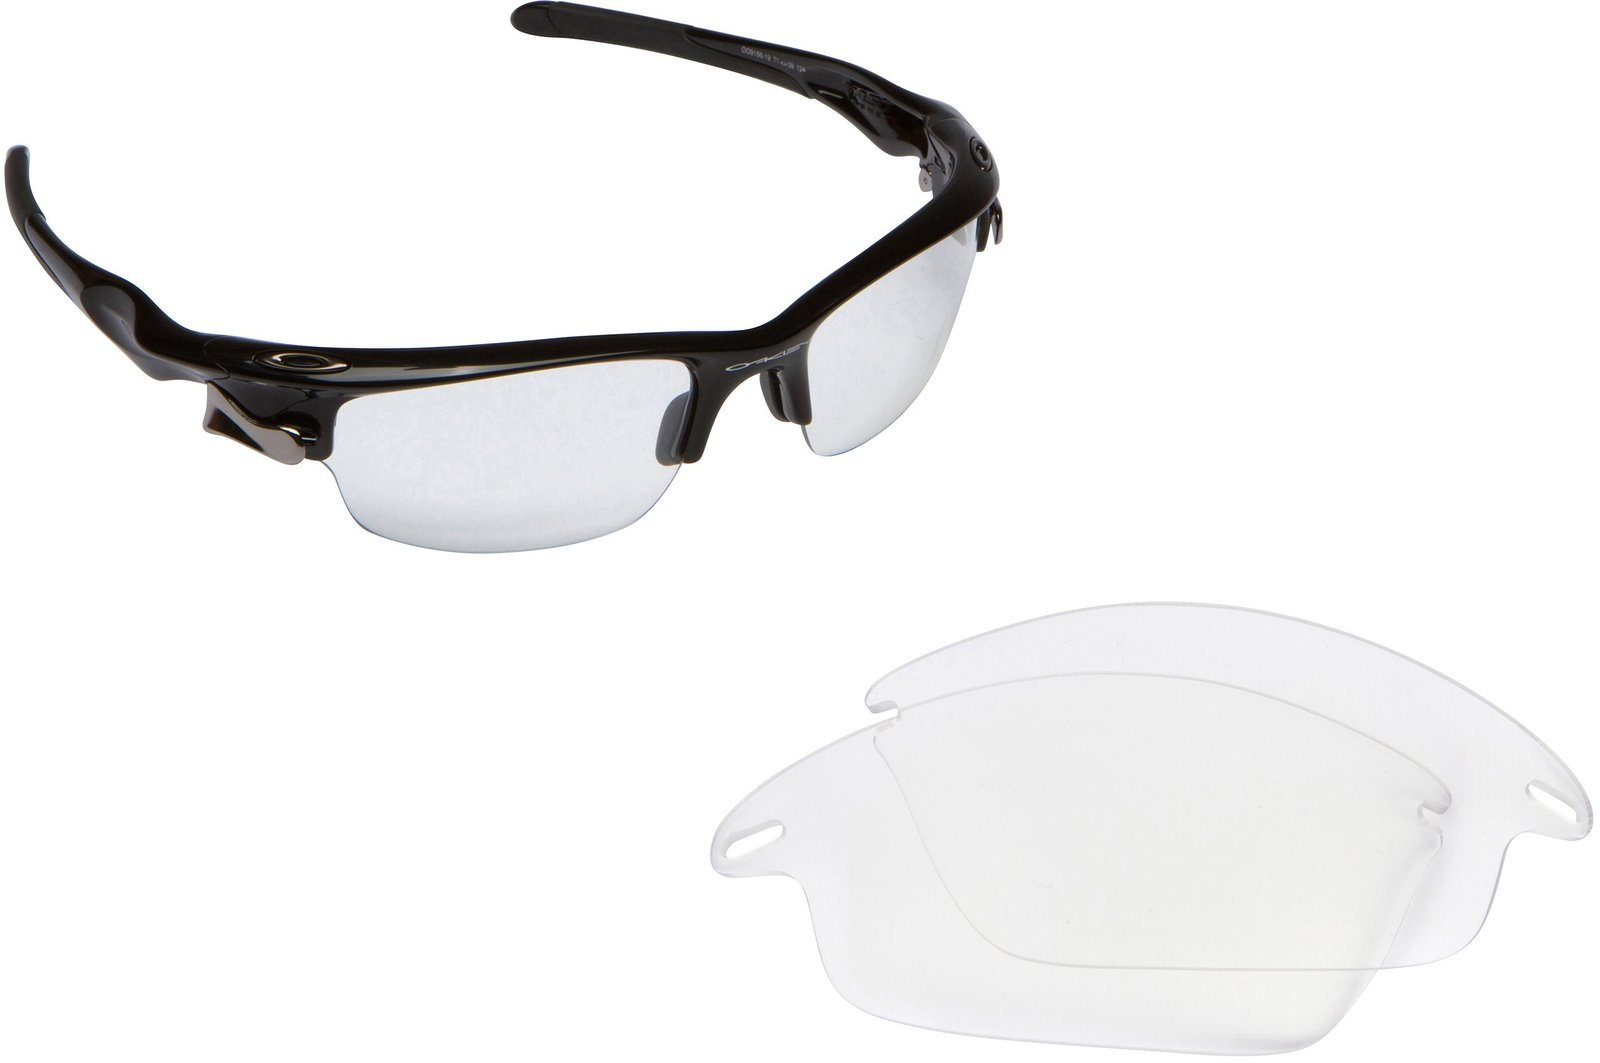 7320923065d9b New Seek Optics Replacement Lenses Oakley and 50 similar items. 71v0o0p3gql